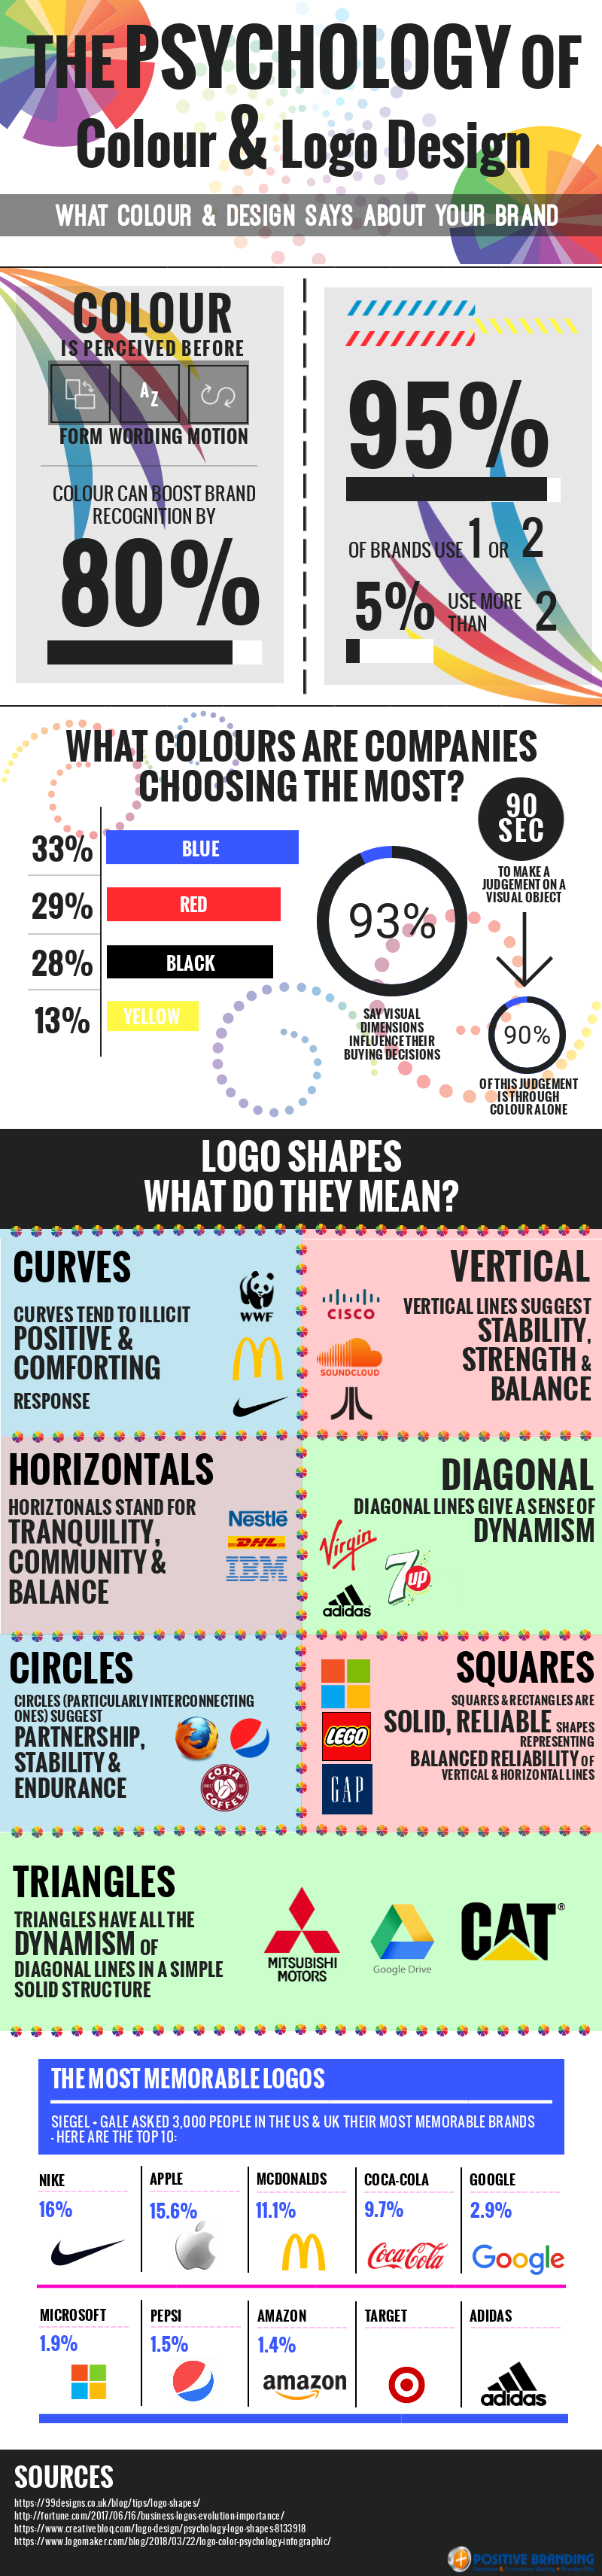 psychology of colour and logo design